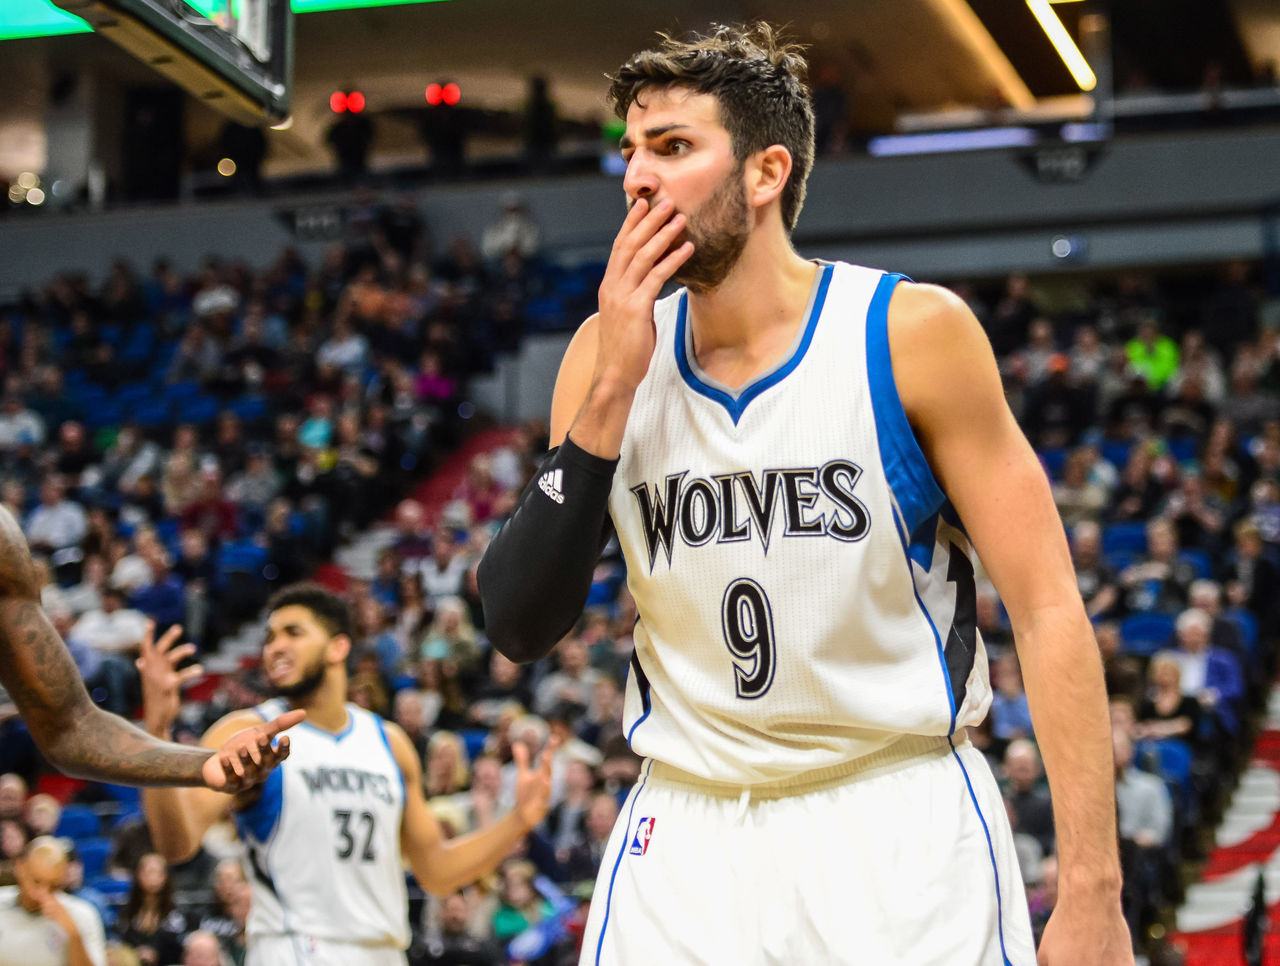 Cropped 2017 02 05t035002z 161474062 nocid rtrmadp 3 nba memphis grizzlies at minnesota timberwolves